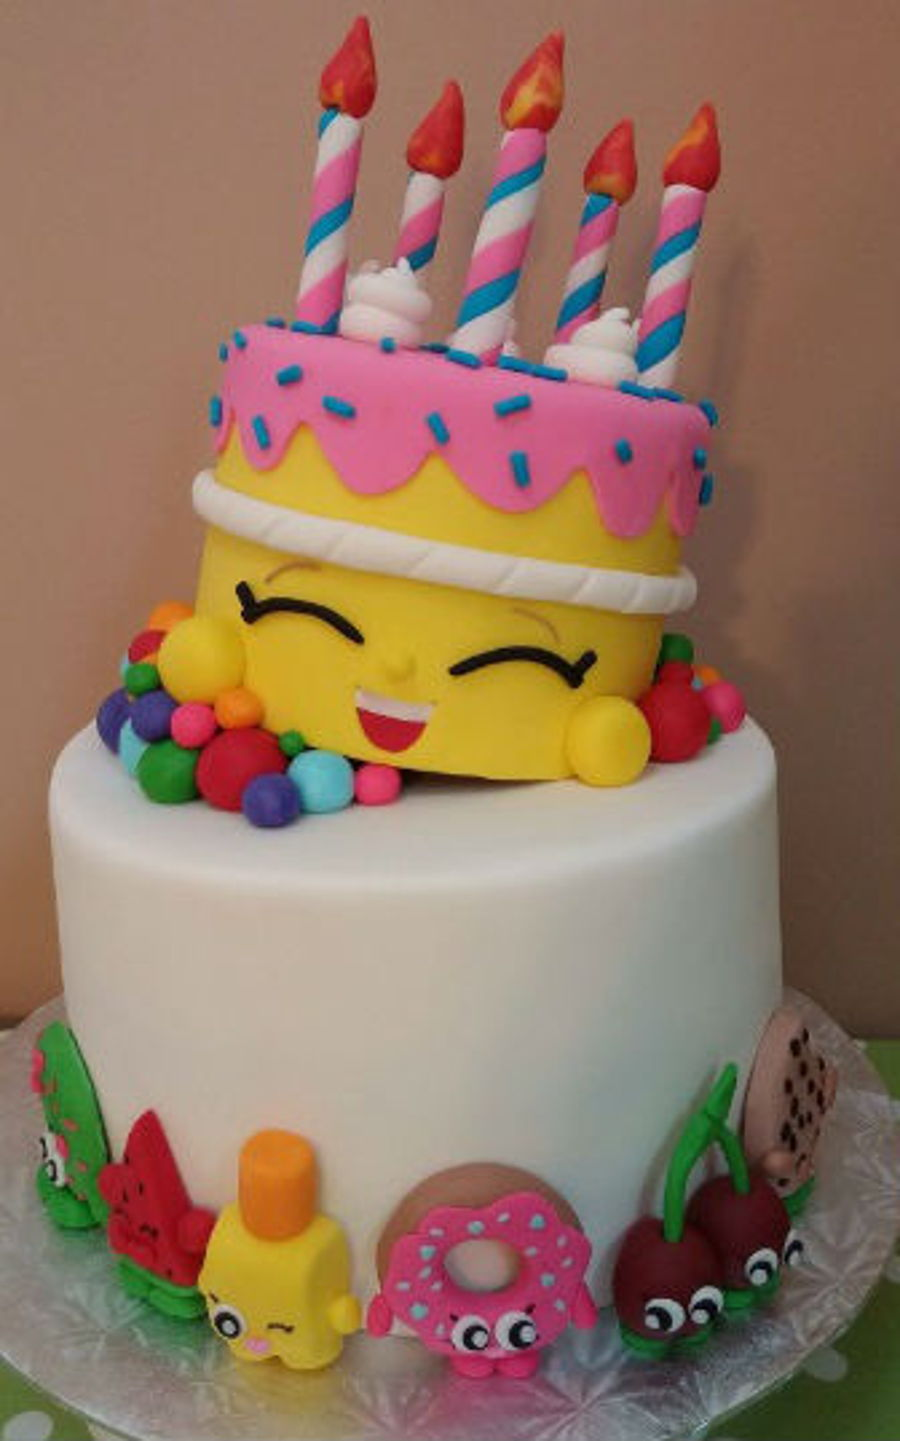 Cake Decorating How Many Issues : Shopkins Cake Tutorial! - CakeCentral.com